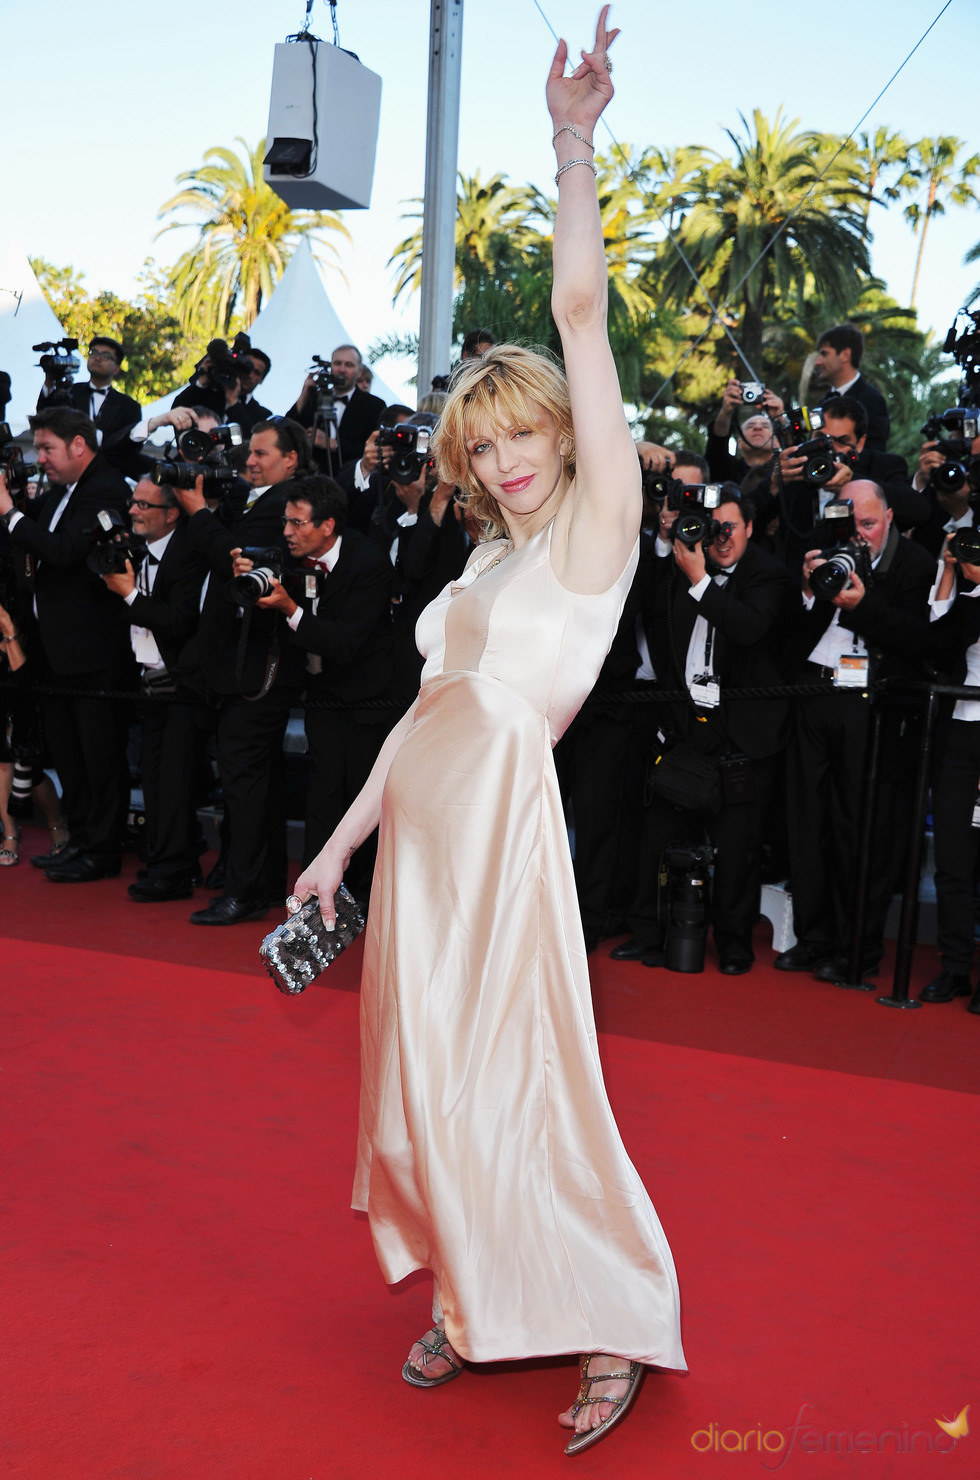 Courtney Love en la premier de 'This must be the plase' en Cannes 2011